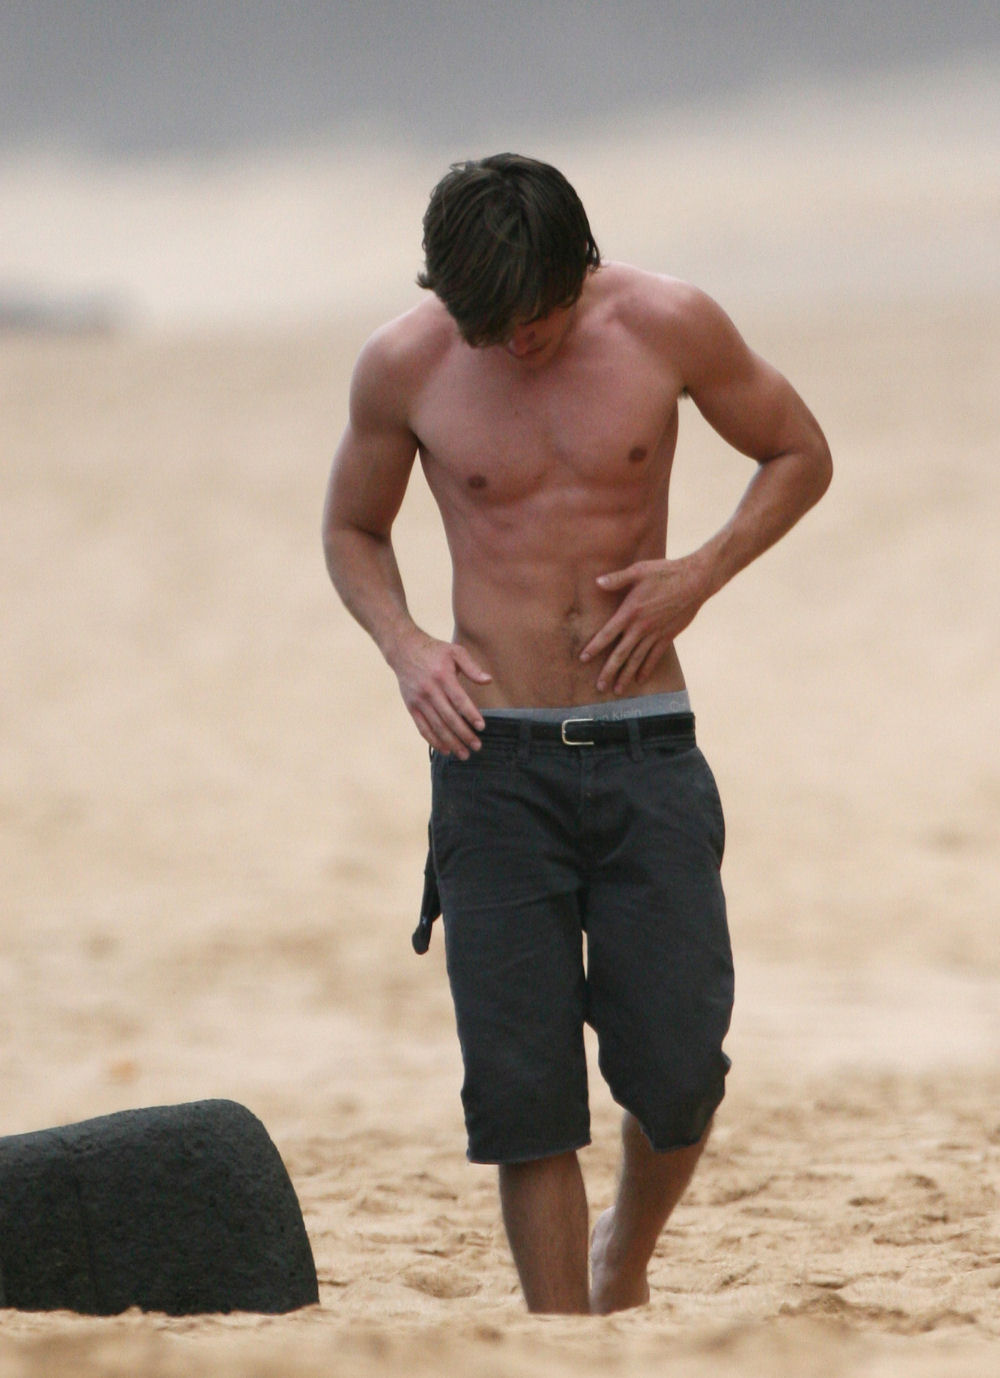 http://aviewofthec.files.wordpress.com/2008/10/zac-efron-beach.jpg